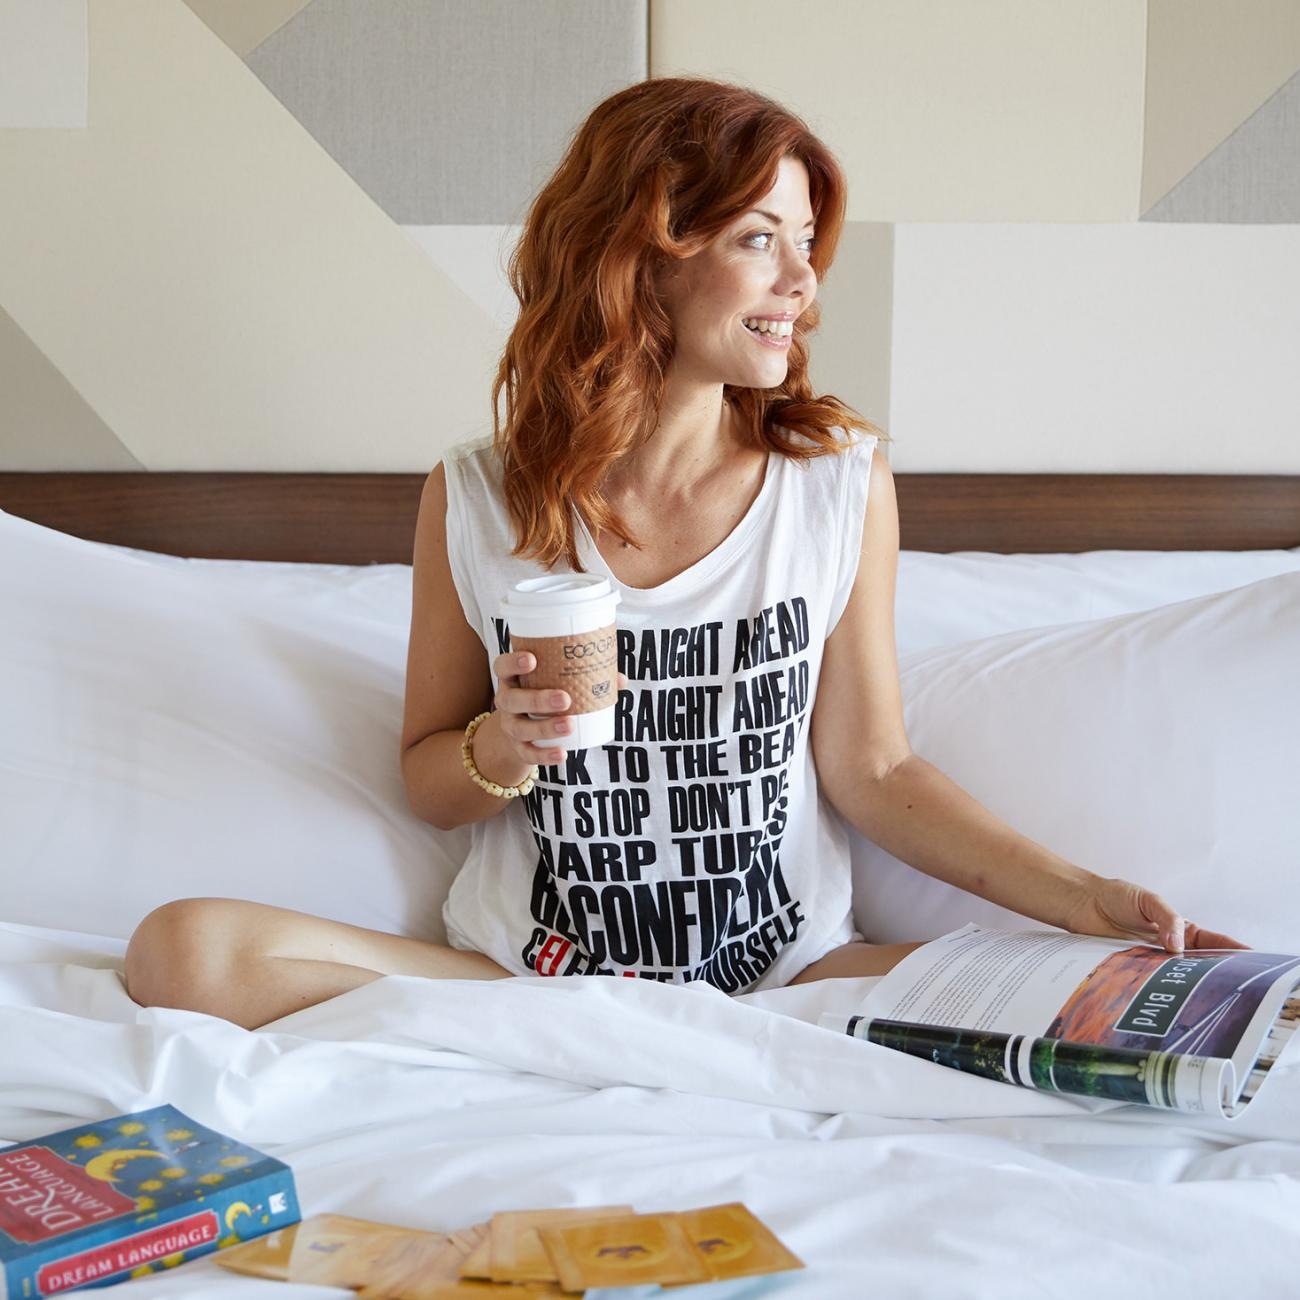 A woman hanging out in bed reading books and drinking coffee